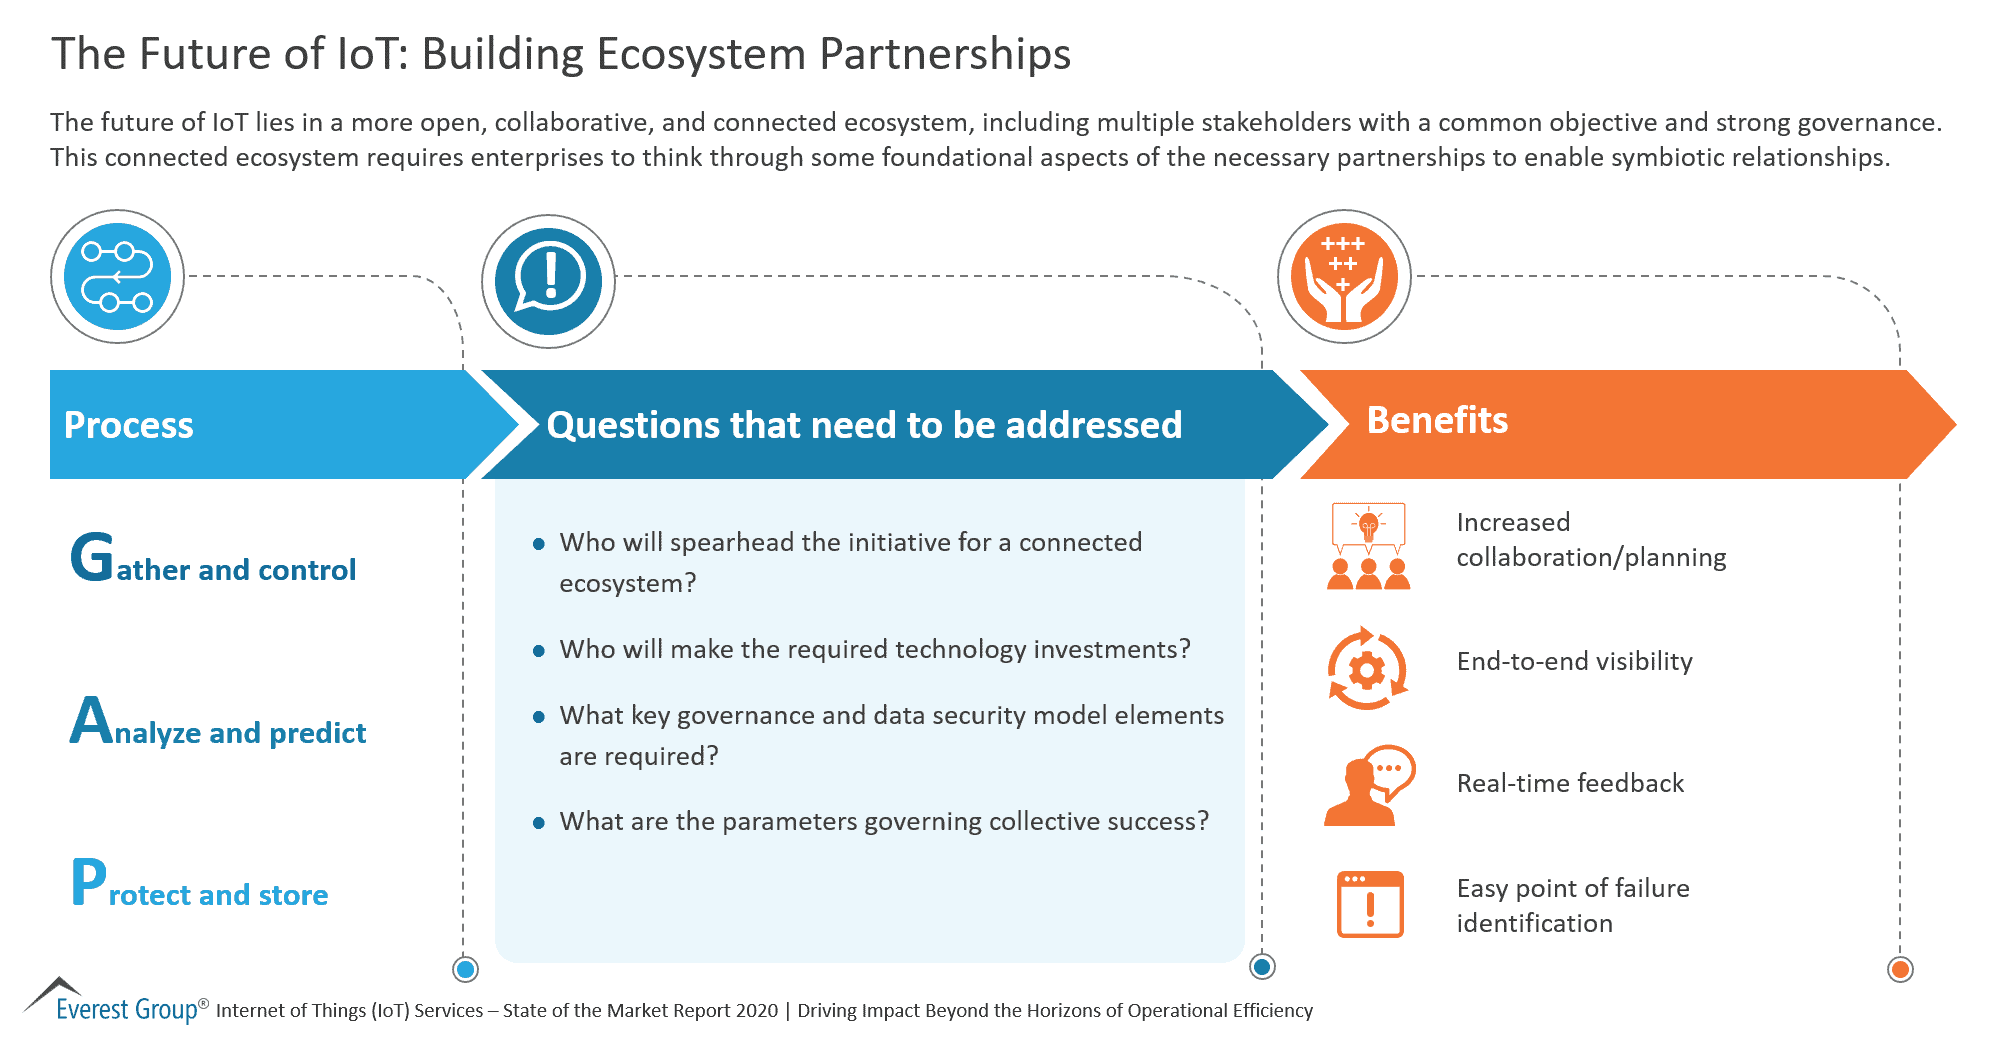 The Future of IoT - Building Ecosystem Partnerships